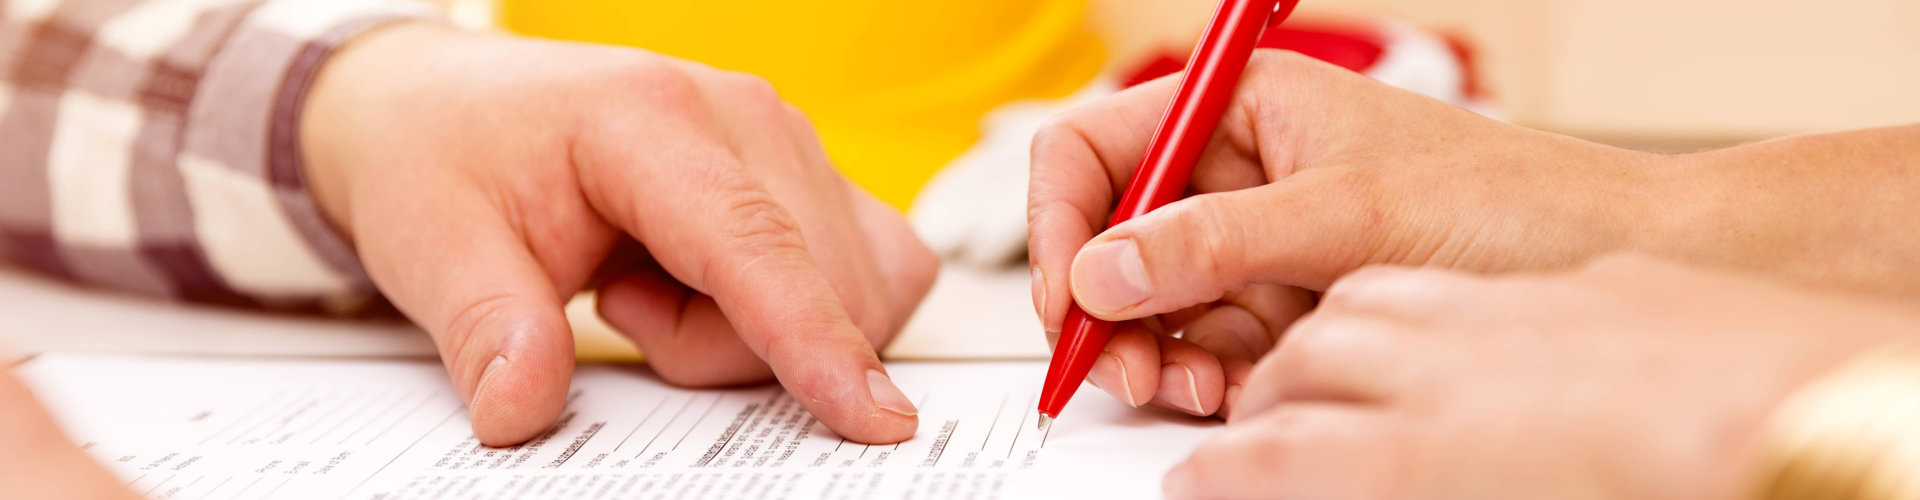 writing a document concept